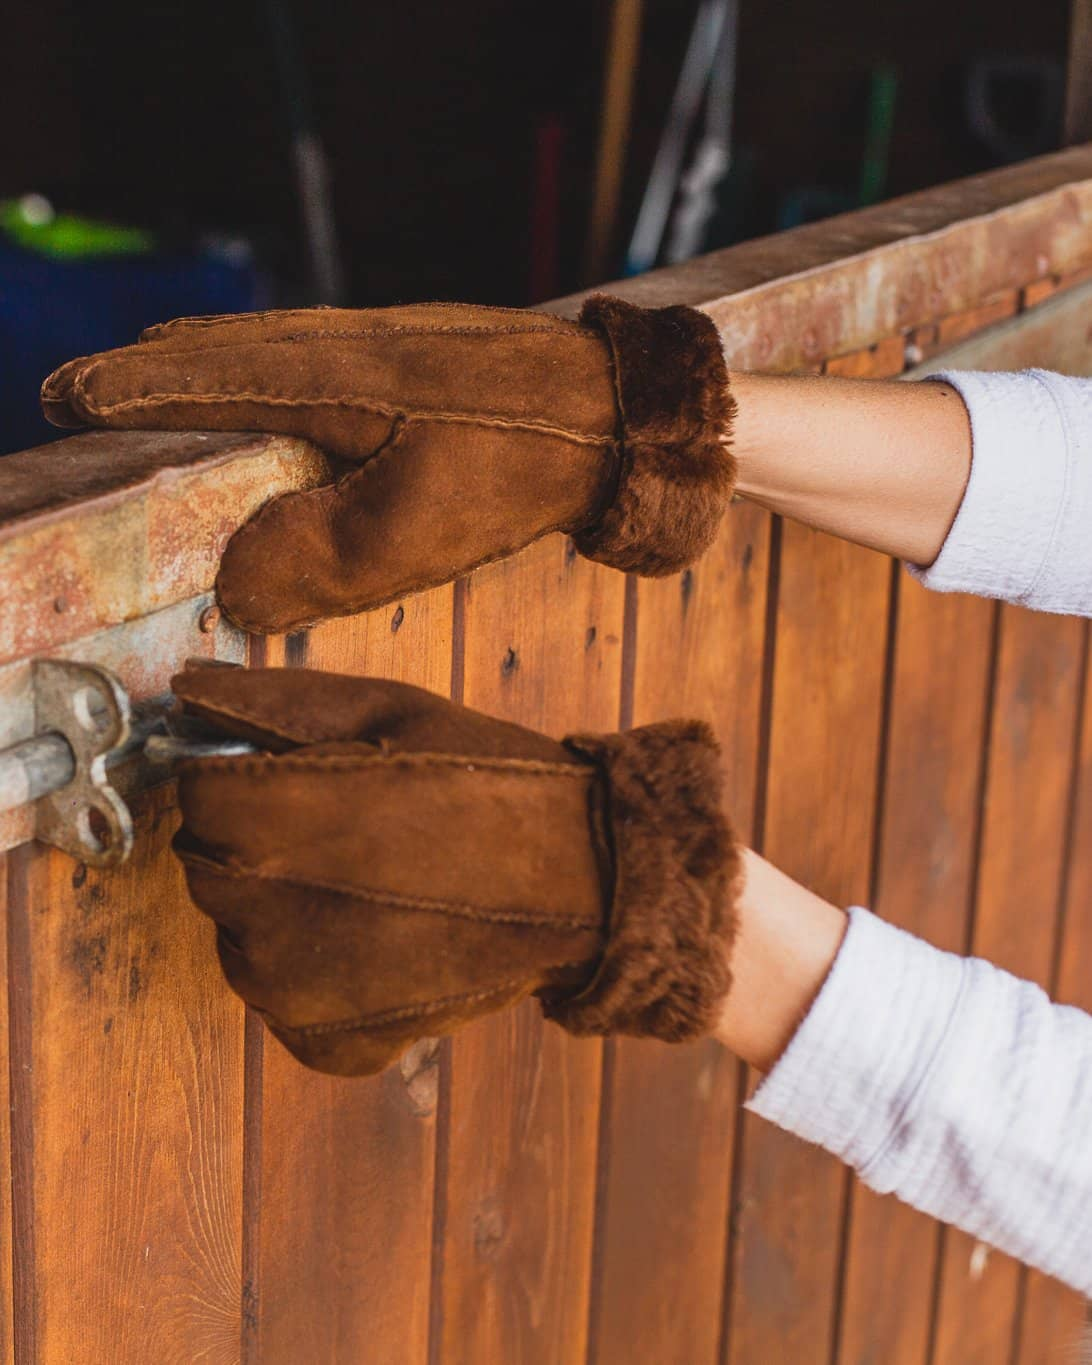 Nordvek womens sheepskin brown gloves sat on wall 301-100